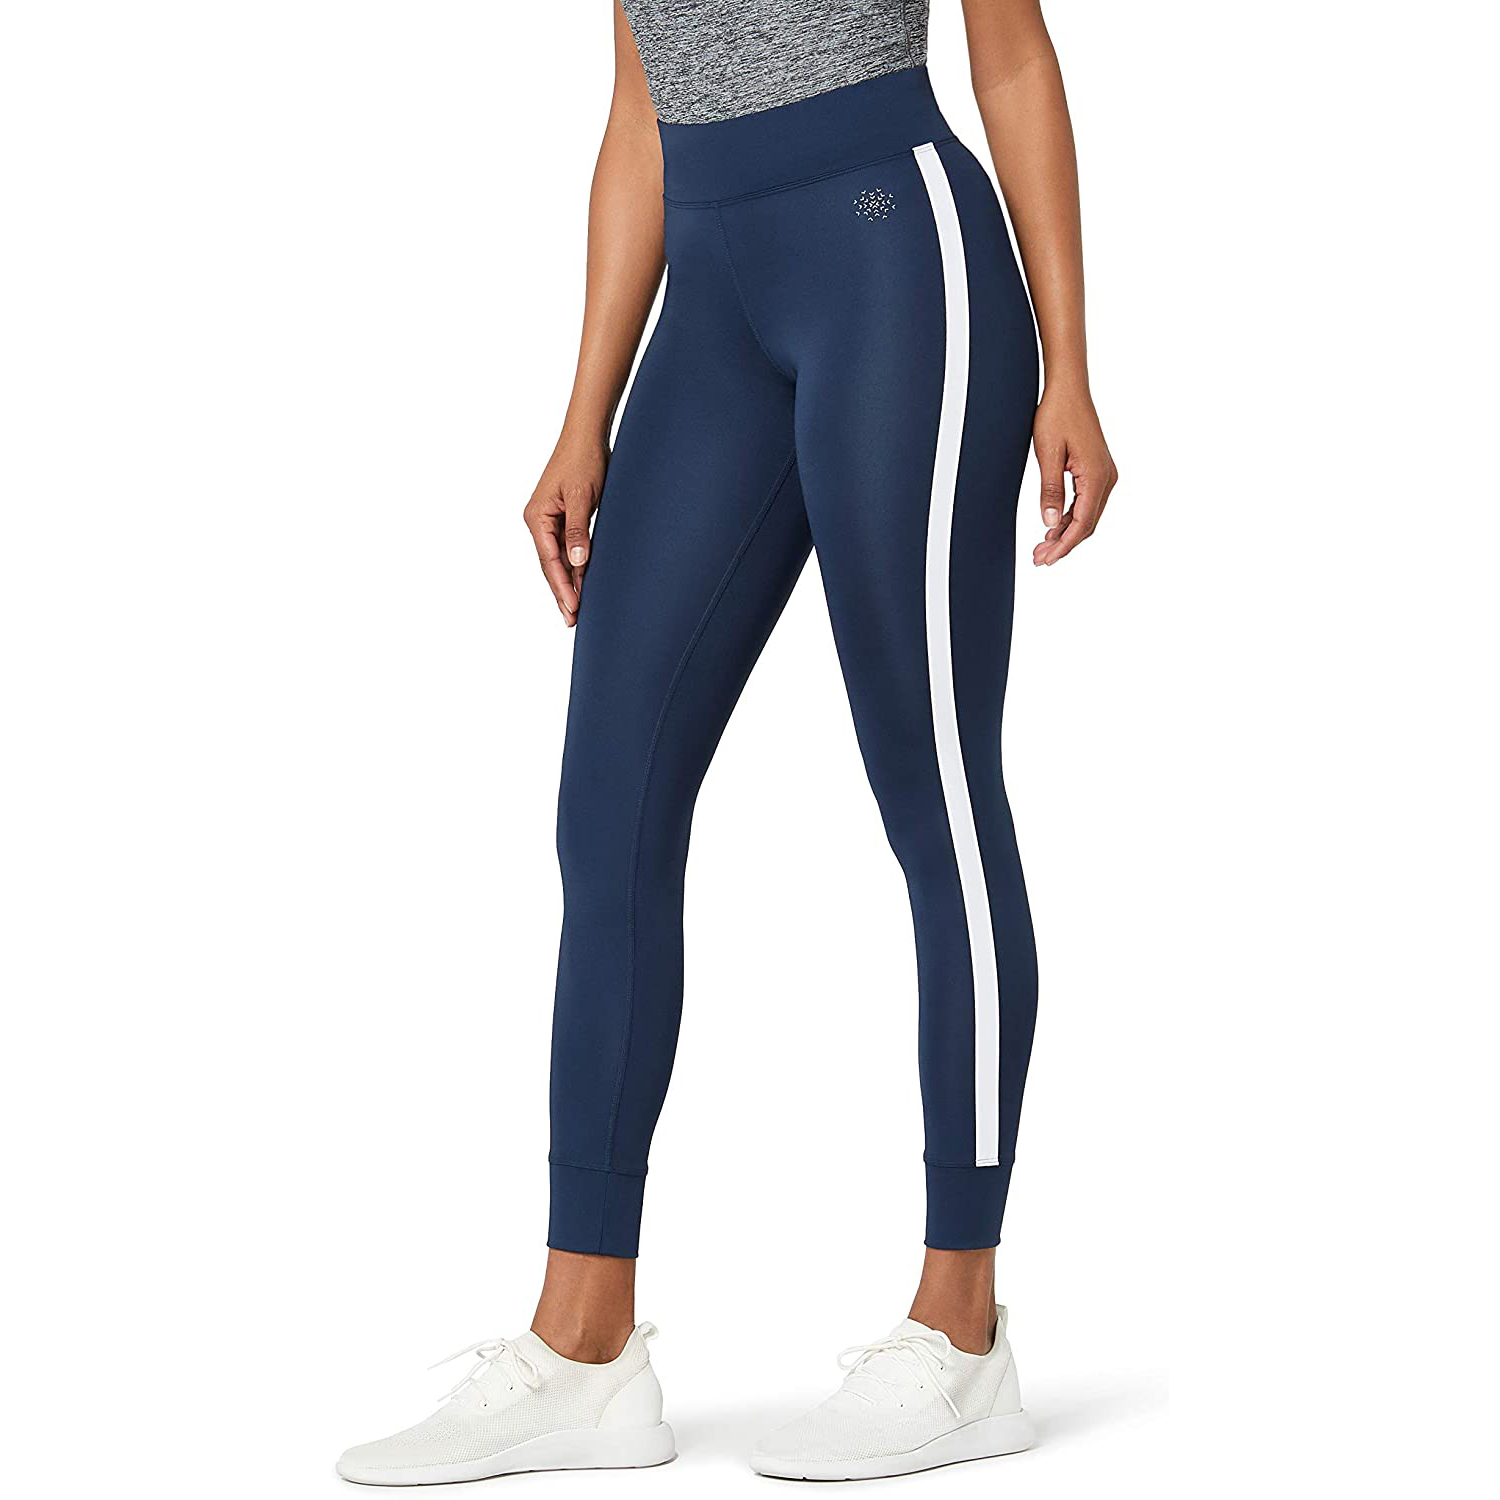 Aurique Women's Side Stripe Sports Leggings